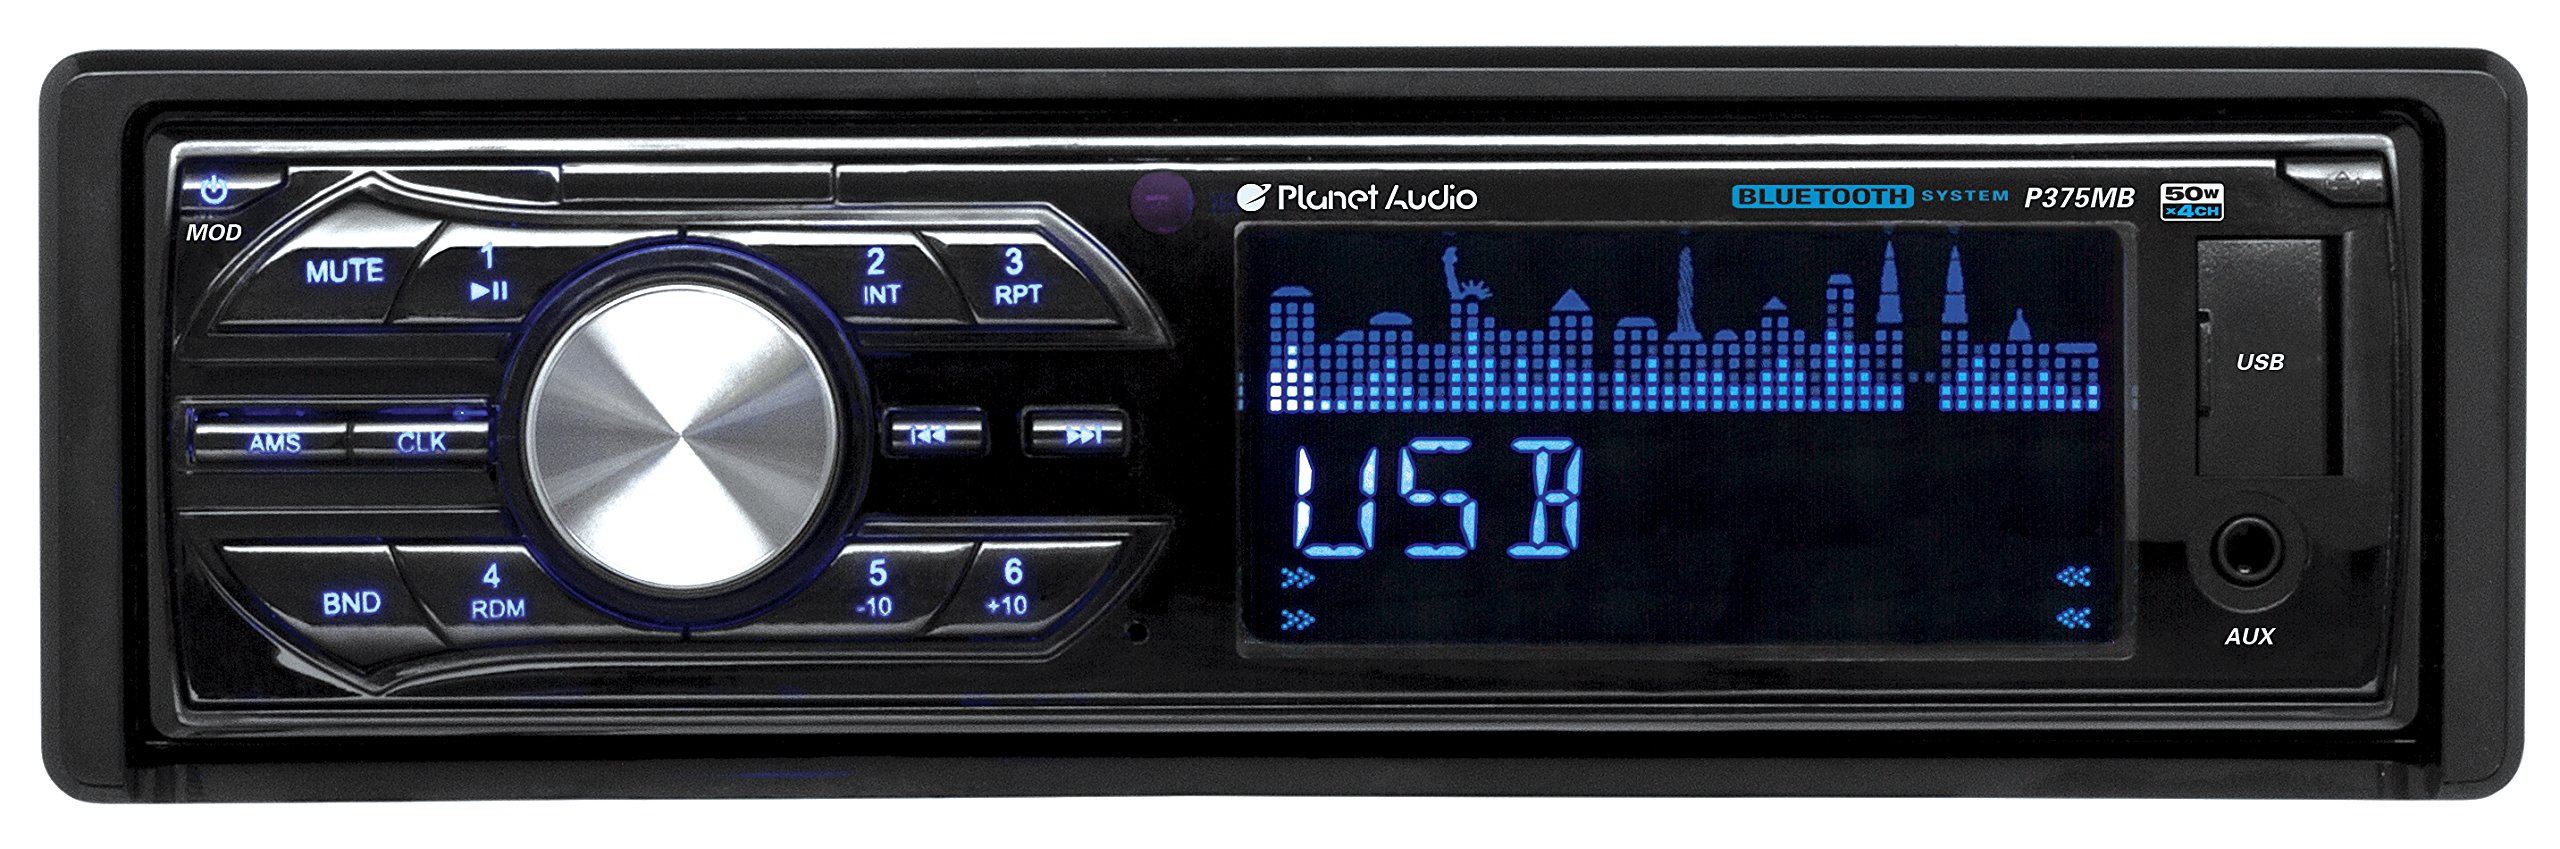 Planet Audio P375MB Single-Din MECH-LESS Multimedia Player (no CD or DVD), Receiver, Bluetooth, Detachable Front Panel, Wireless Remote